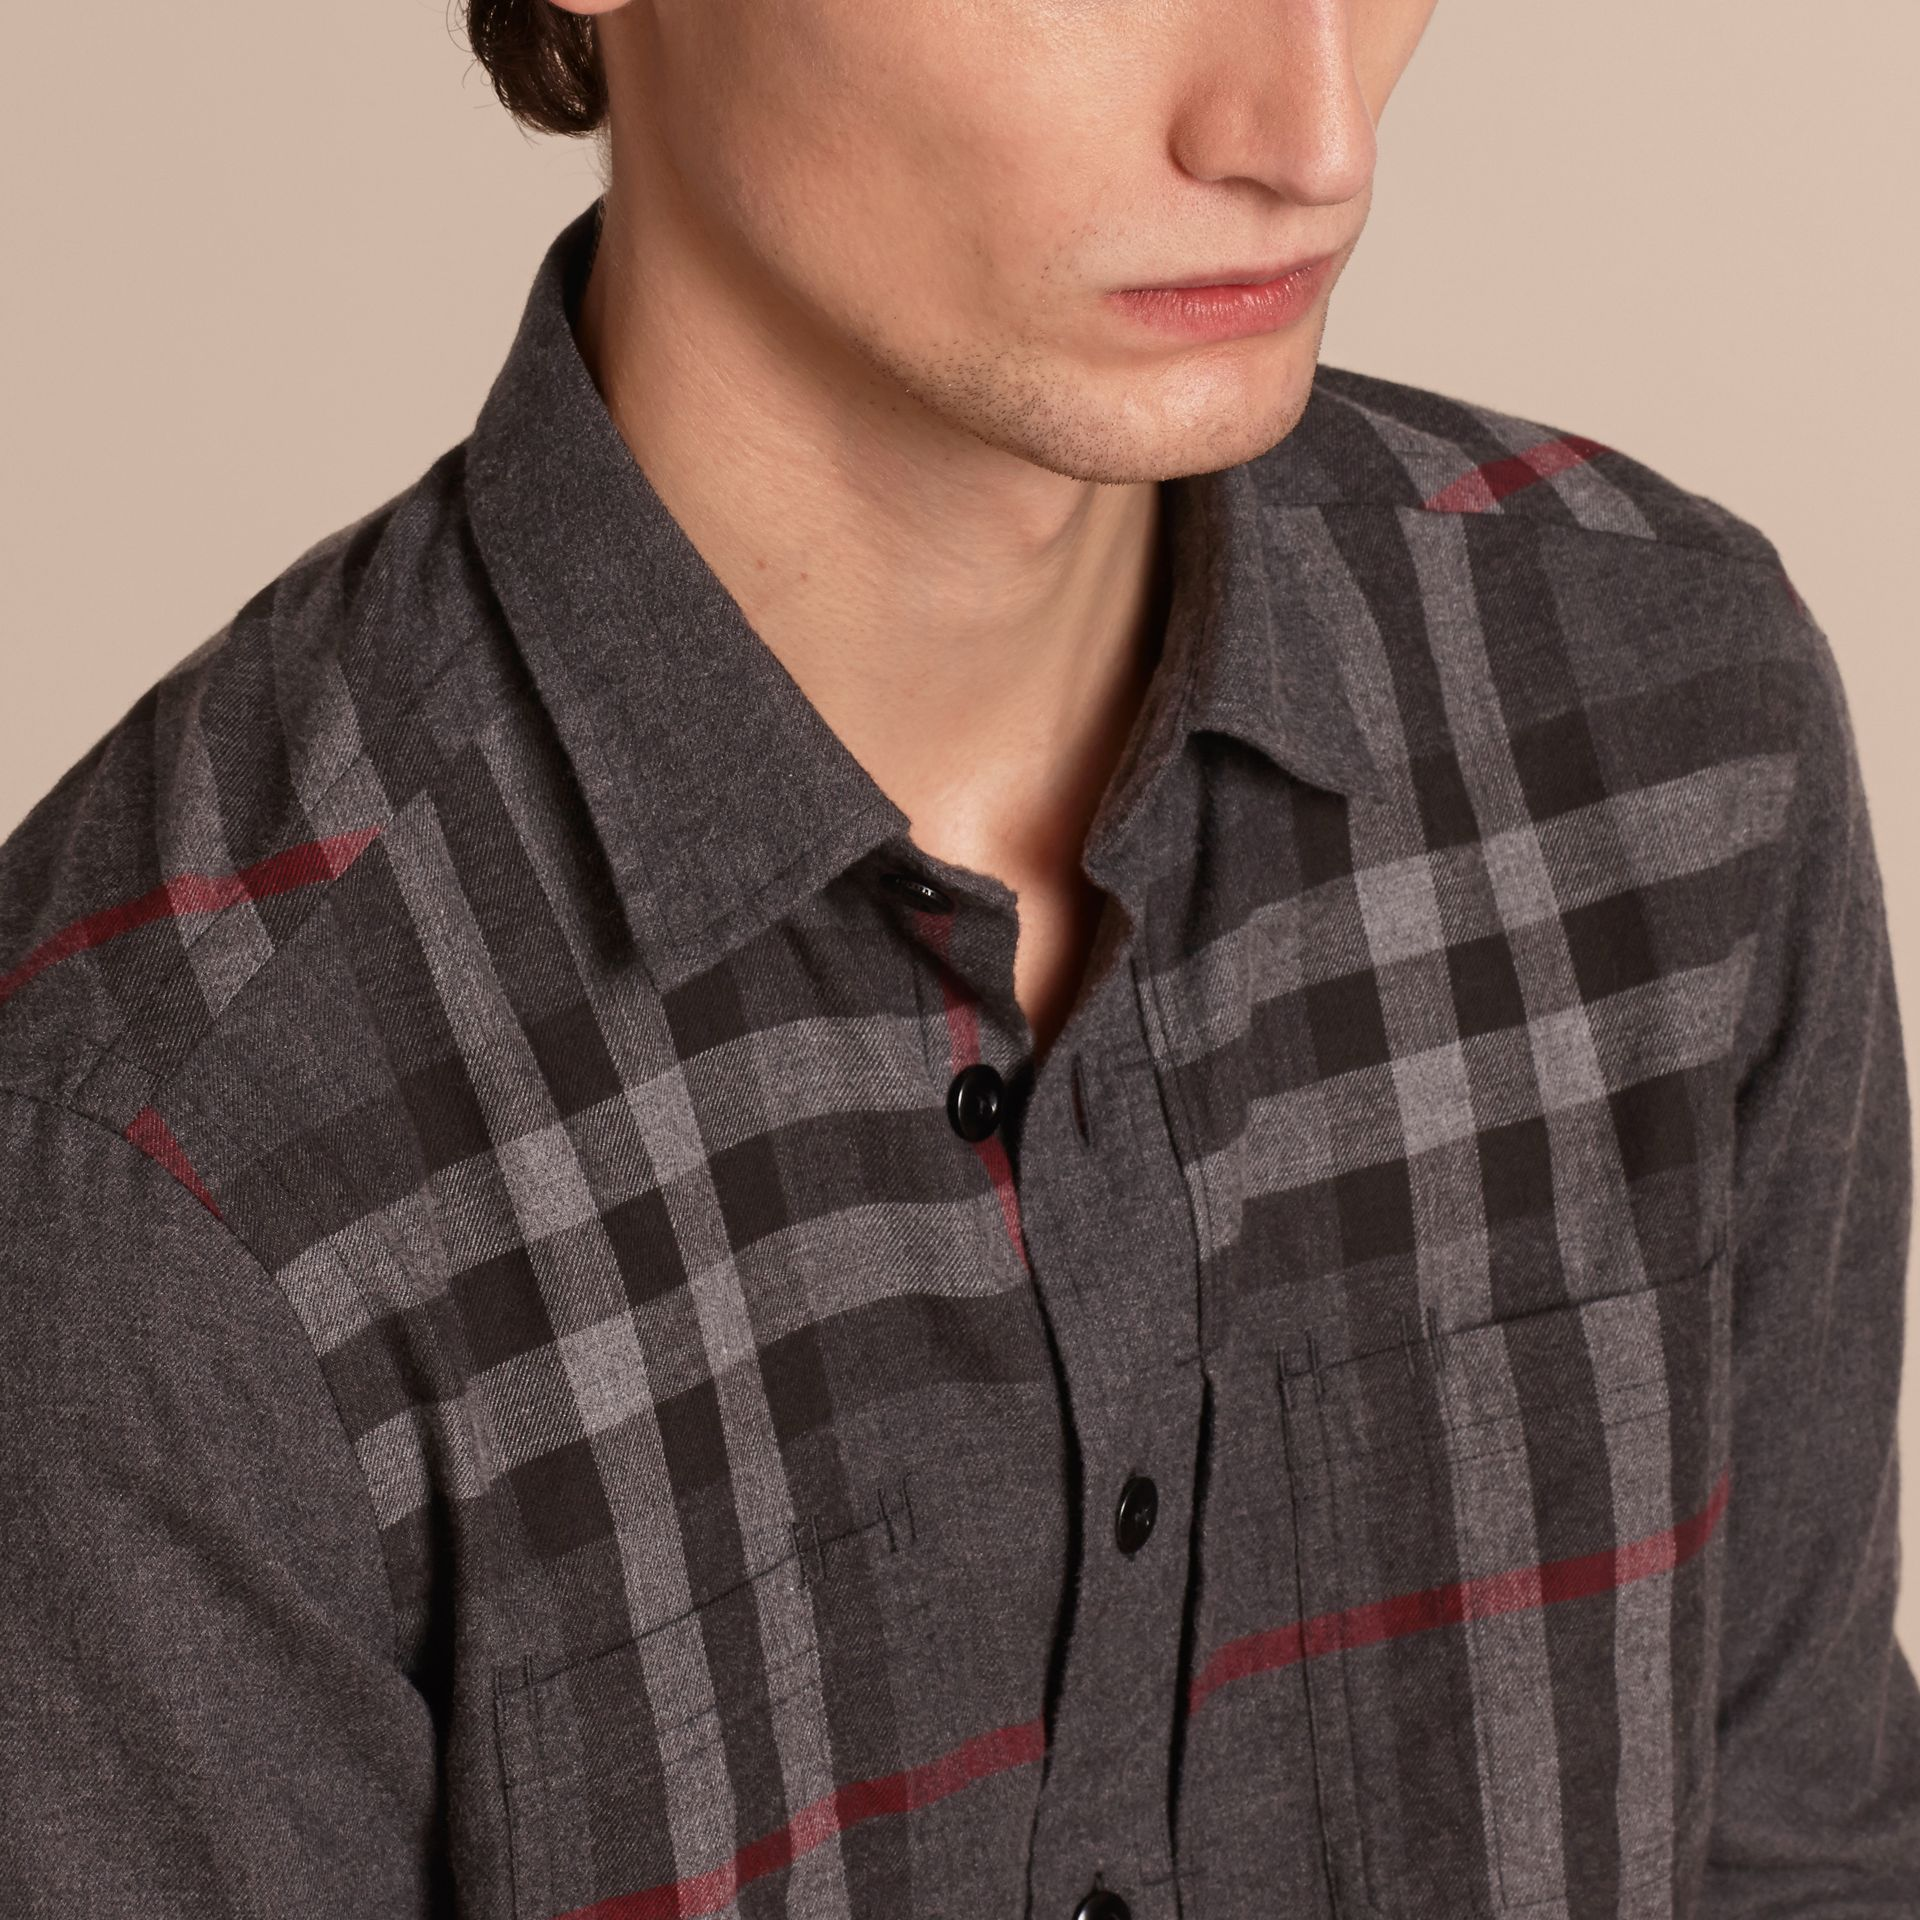 Charcoal melange Check Detail Cotton Flannel Shirt Charcoal Melange - gallery image 5